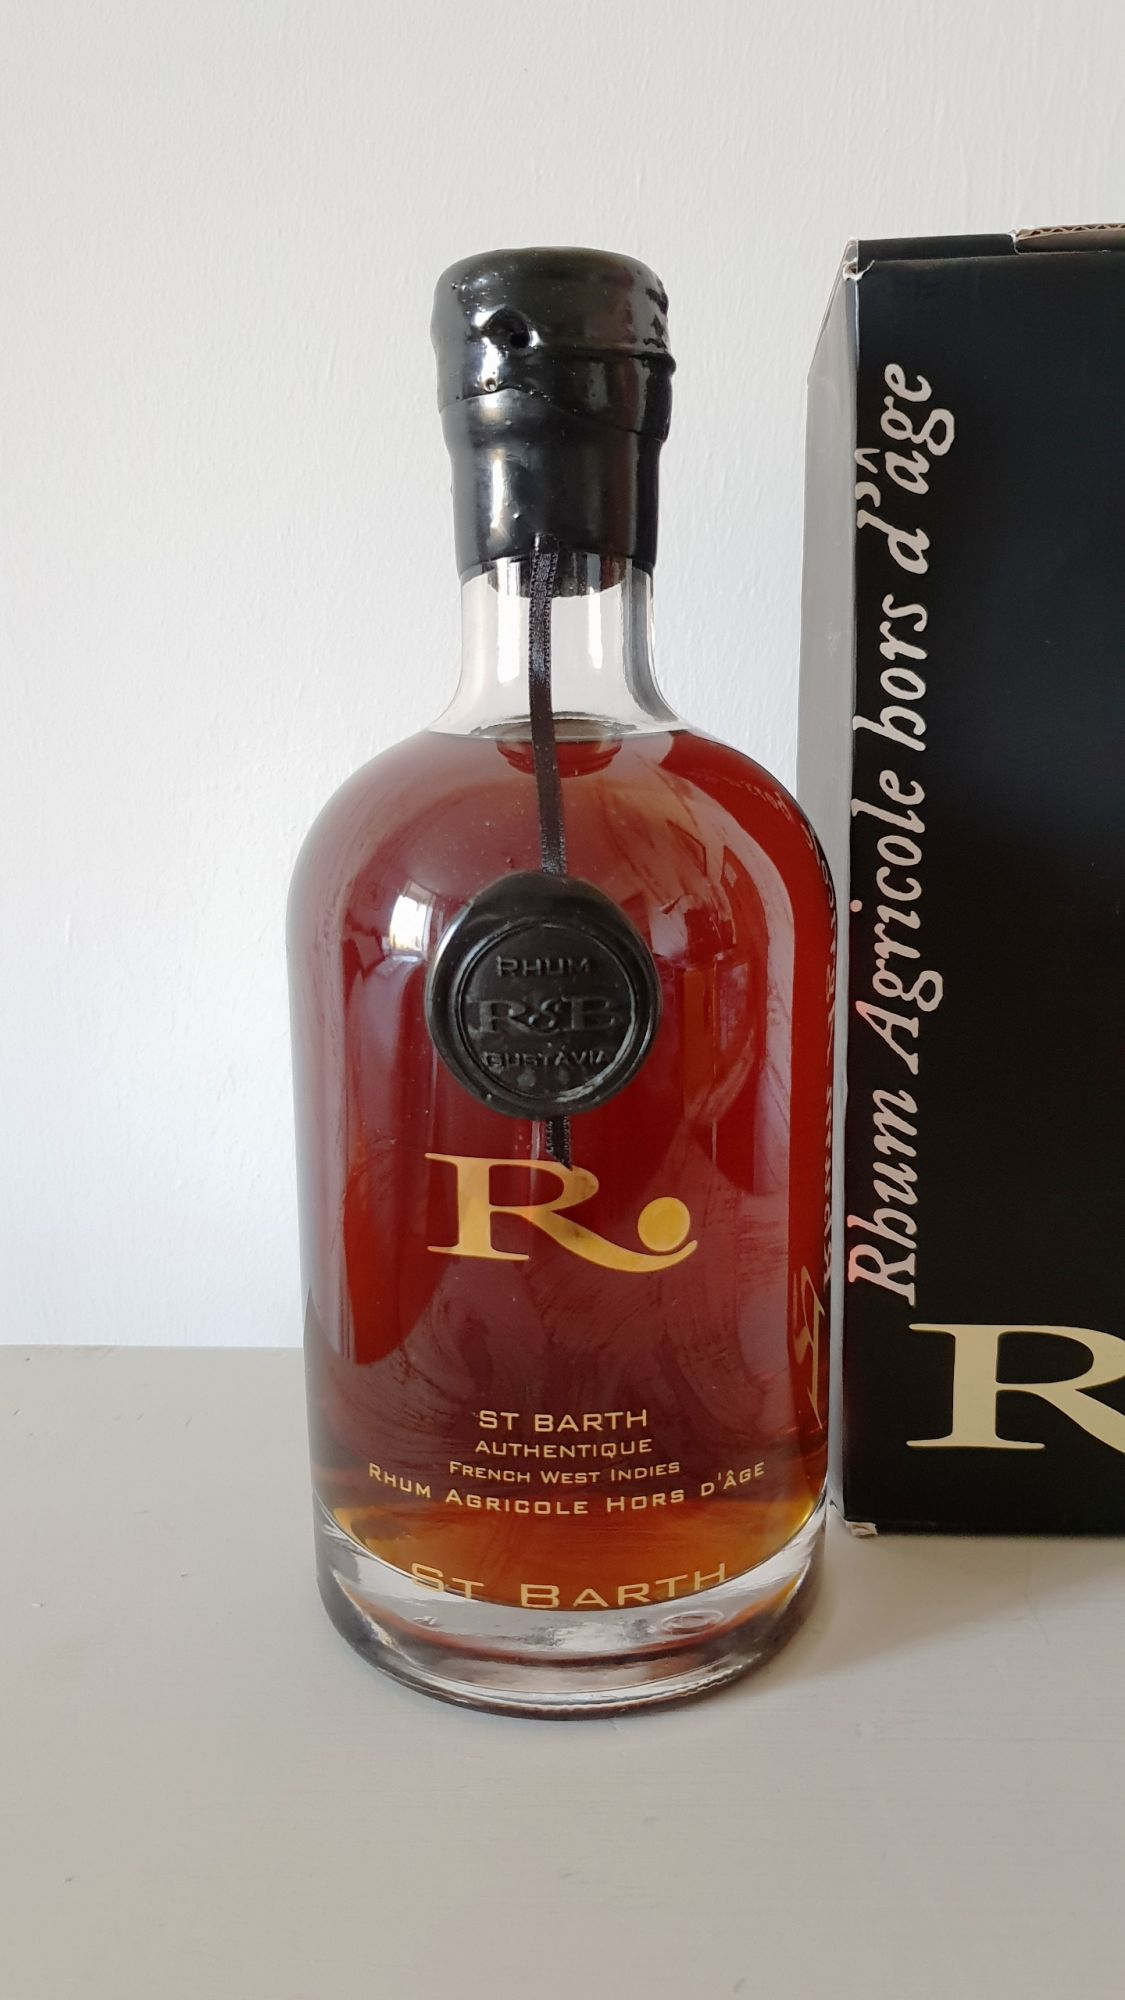 Rhum R. de St Barth AuthentiqueRhum R. de St Barth Authentique